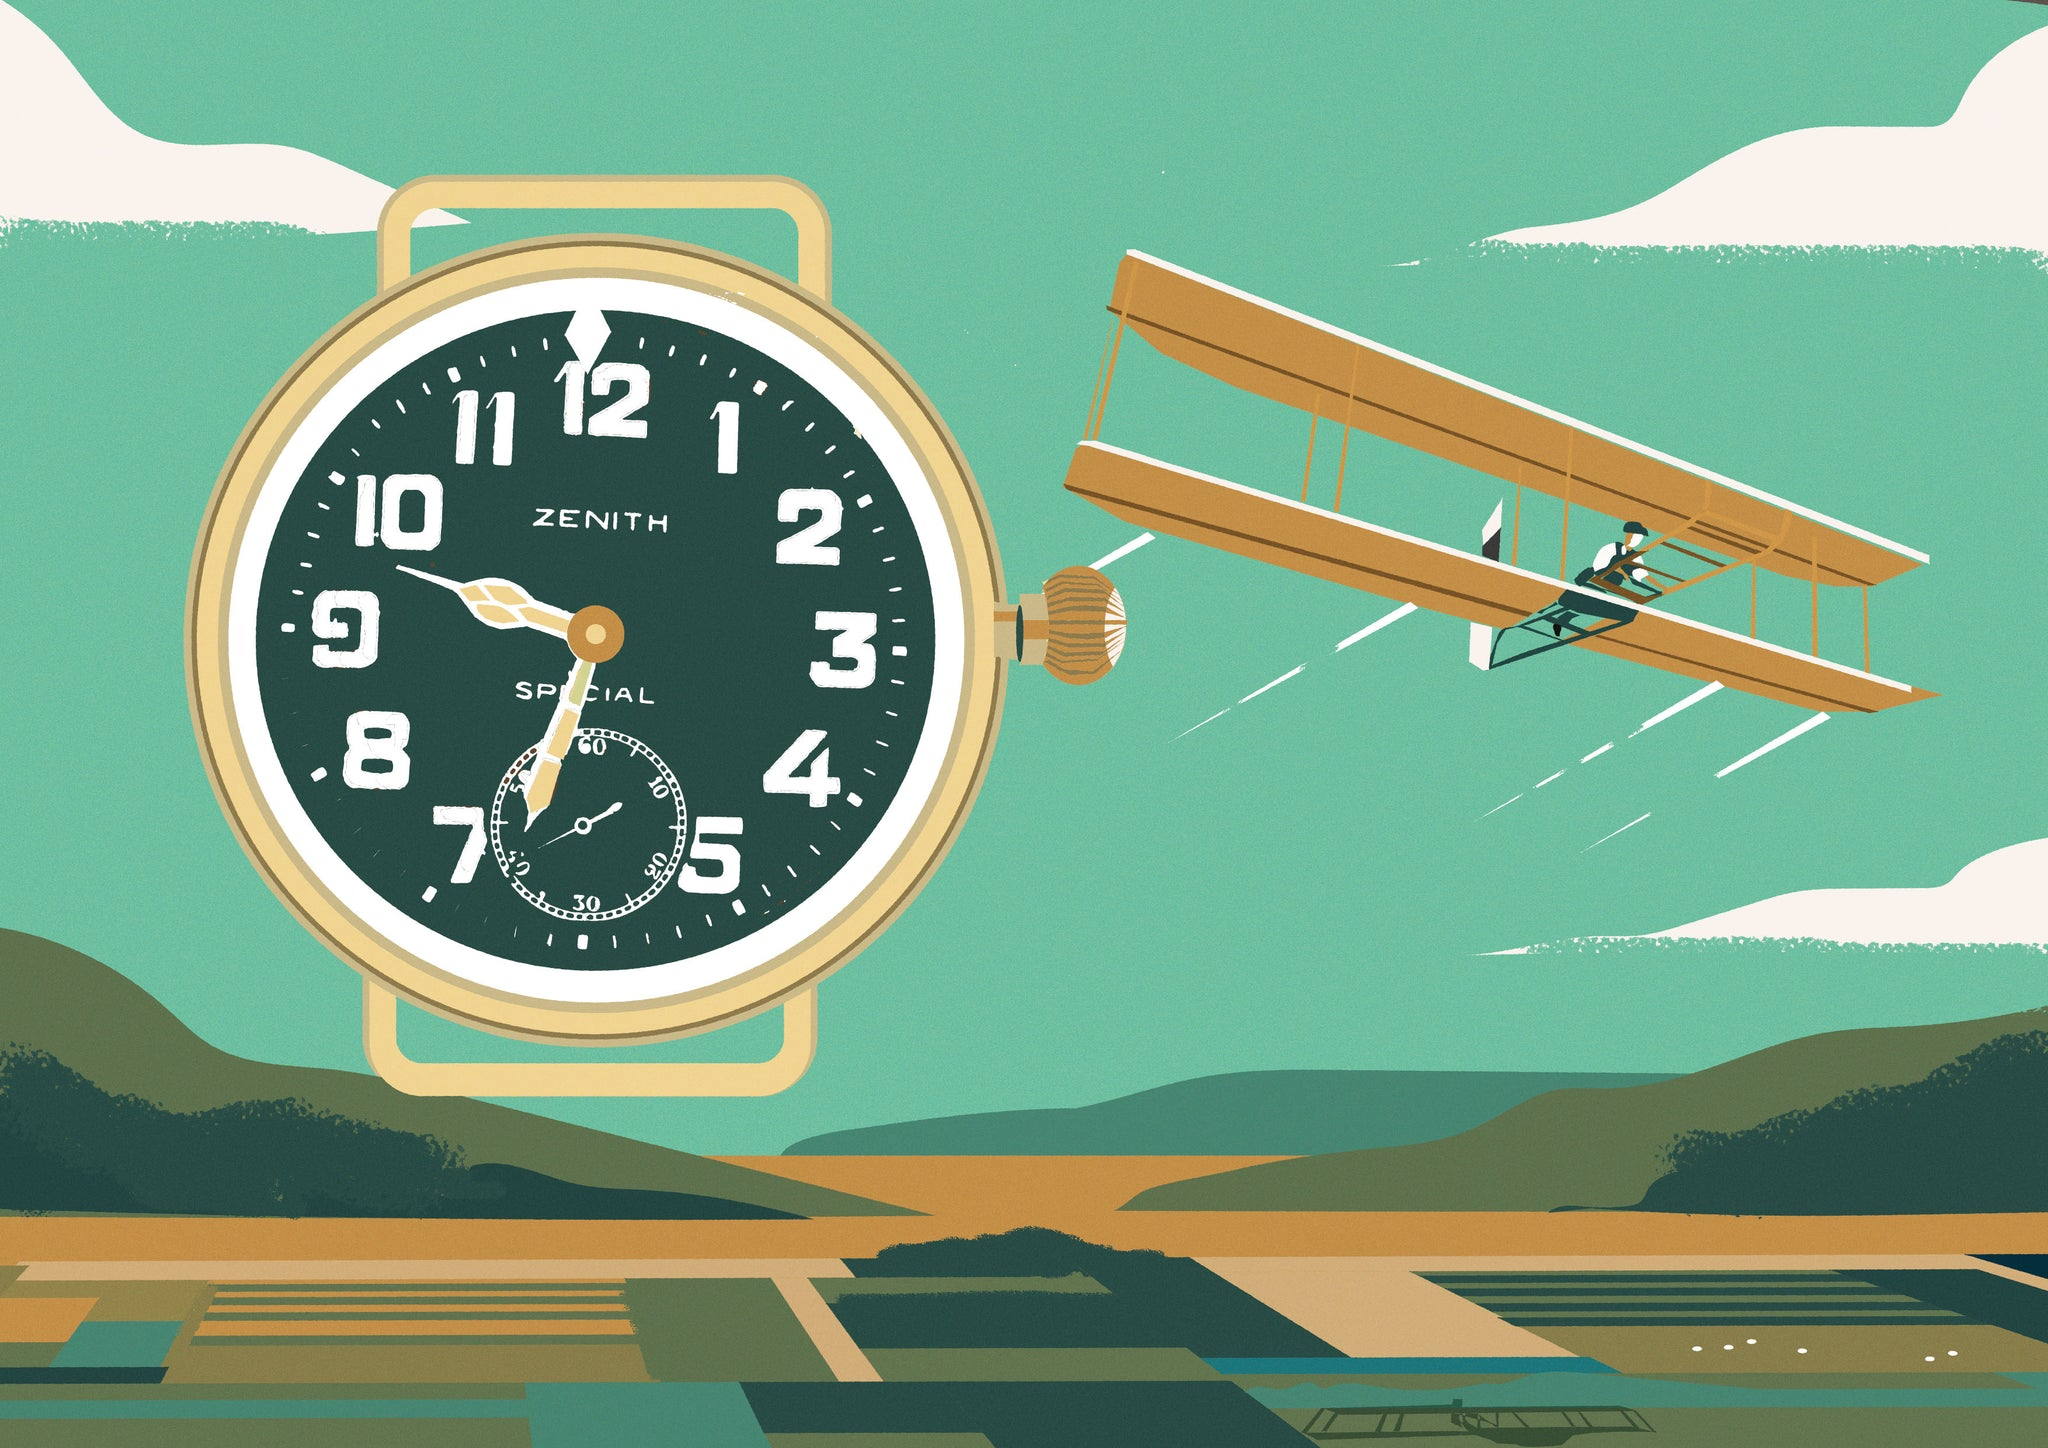 Prints Harry Illustration with Wright brother's plane and early Zenith pilot's watch